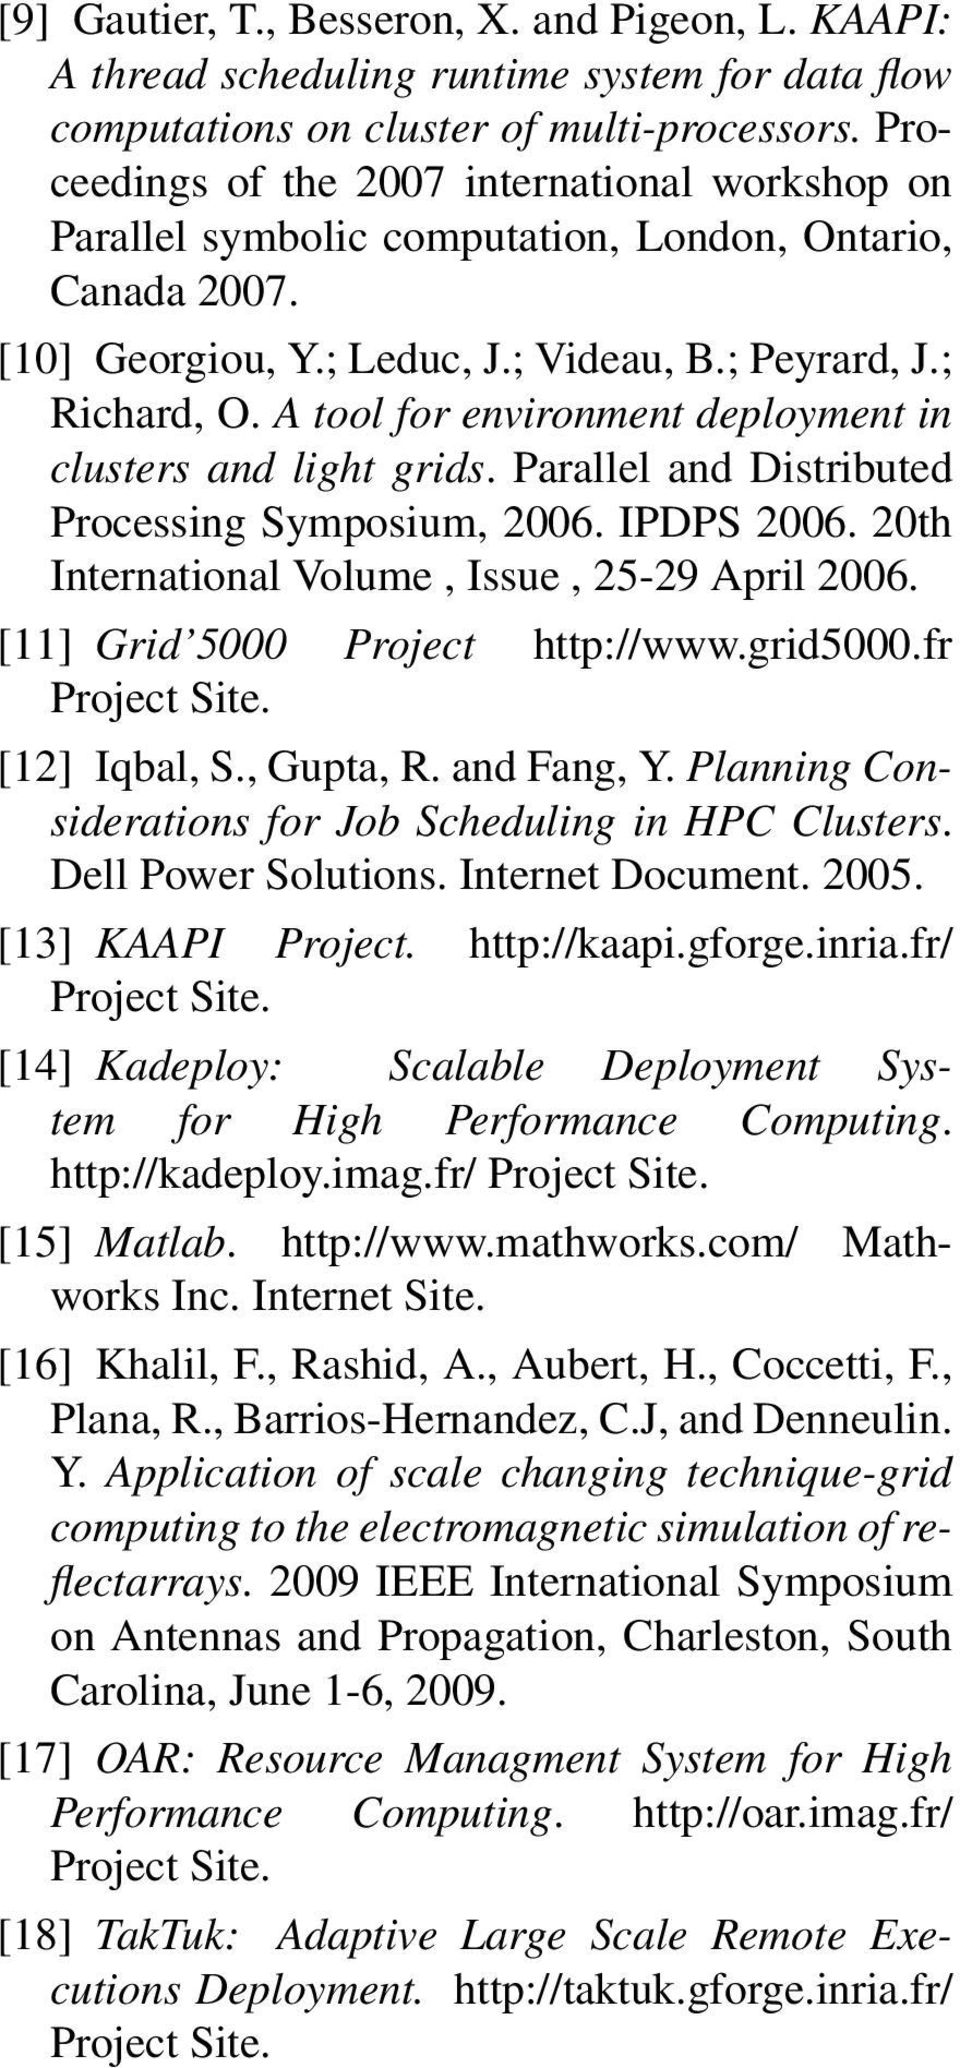 A tool for environment deployment in clusters and light grids. Parallel and Distributed Processing Symposium, 2006. IPDPS 2006. 20th International Volume, Issue, 25-29 April 2006.